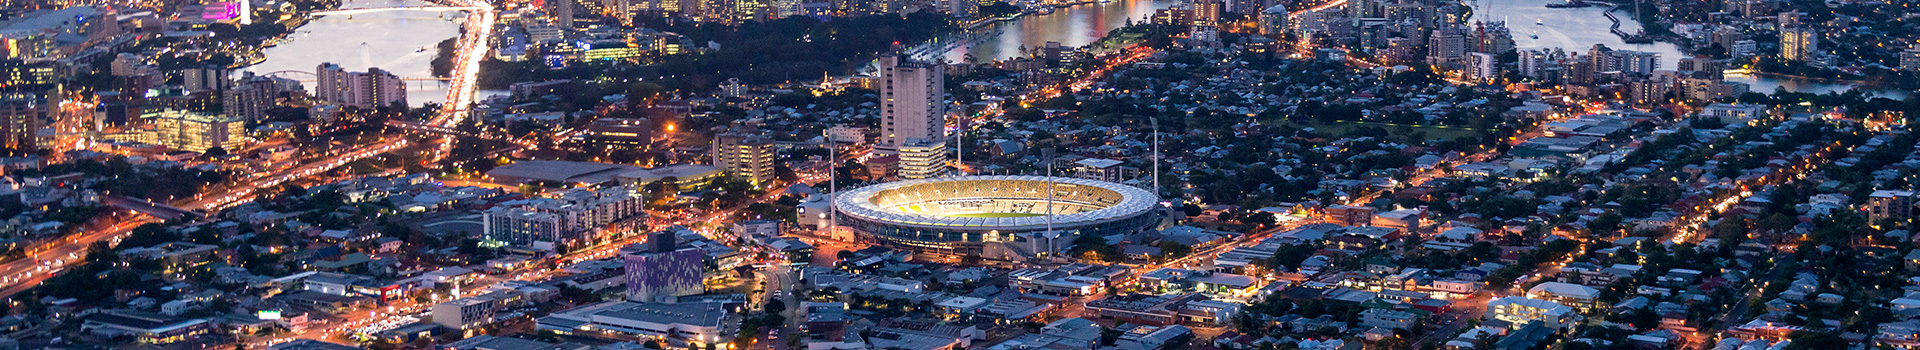 The Gabba under Brisbane City lights